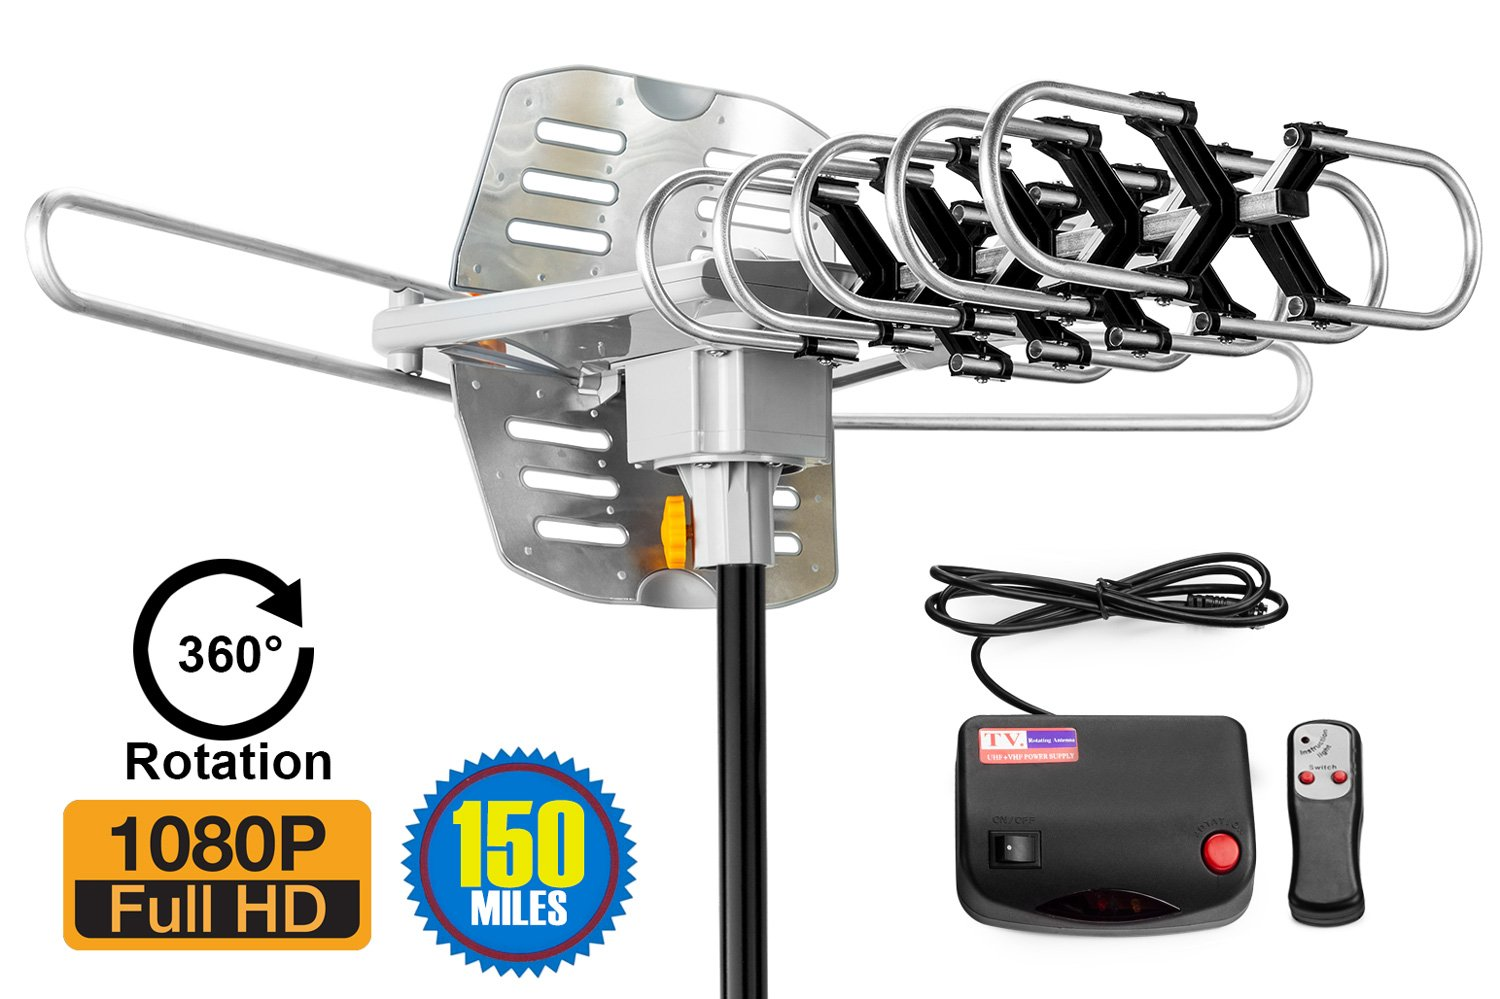 ViewTV 2018 VERSION Outdoor Amplified Digital HDTV Antenna - 150 Mile Range - Motorized 360° Rotation - 40FT Coax Cable - Wireless Remote Control - UHF/VHF 4K 1080P Channels by ViewTV